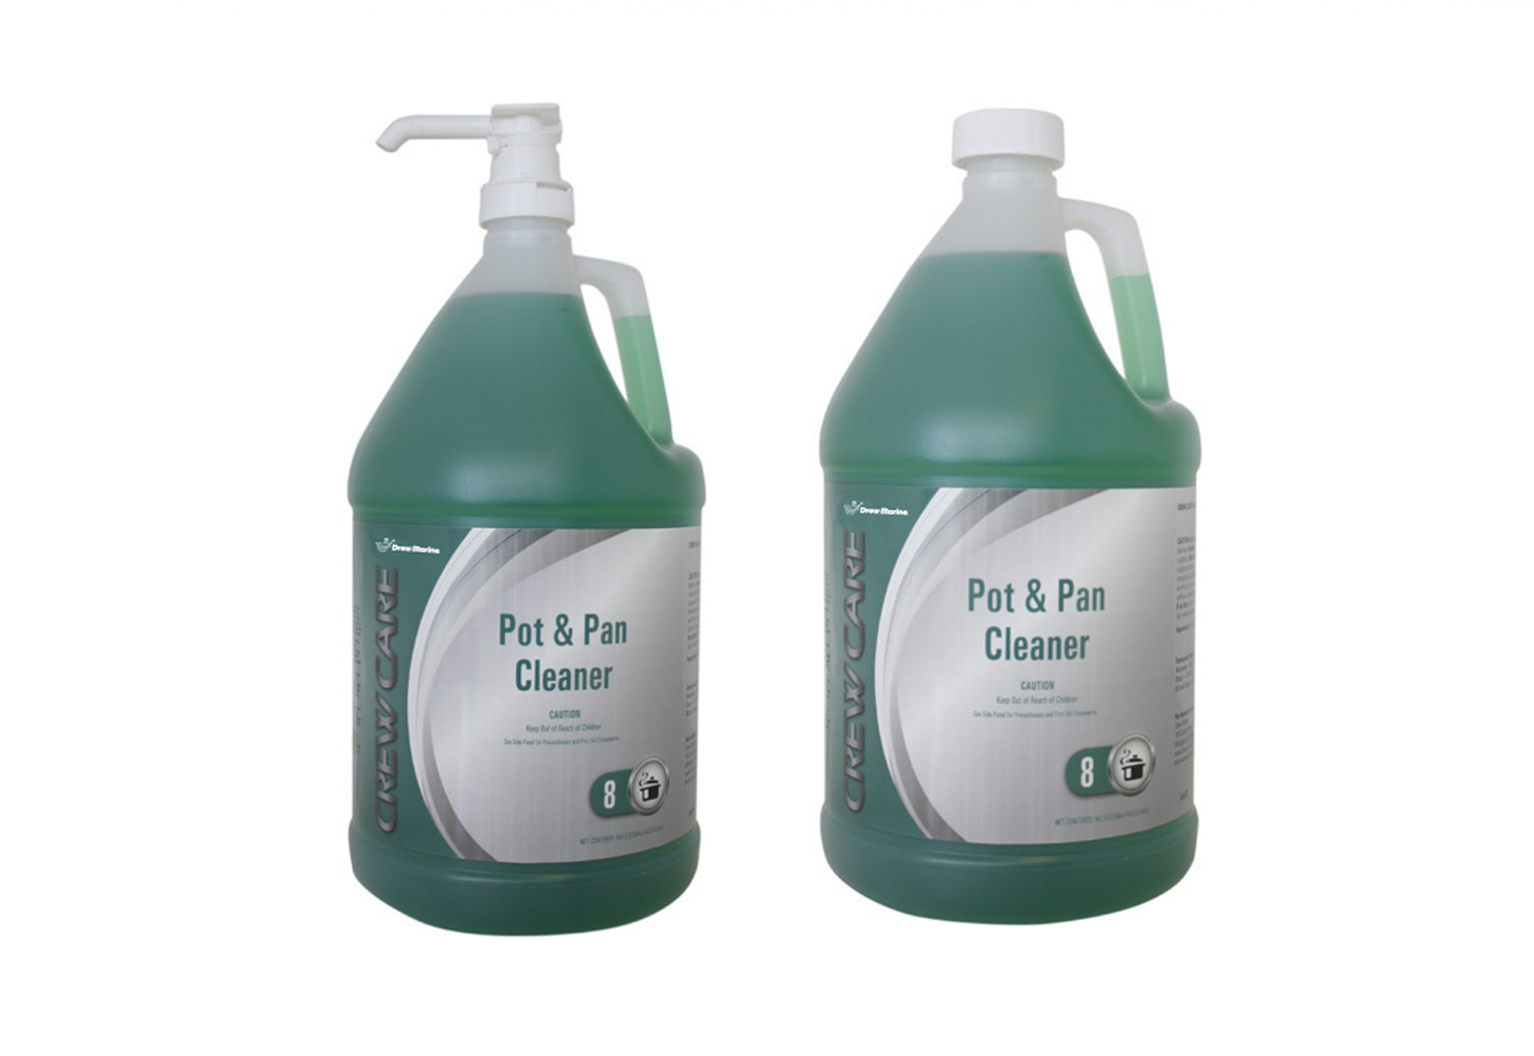 pot_and_pan_cleaner_1544x1062.png